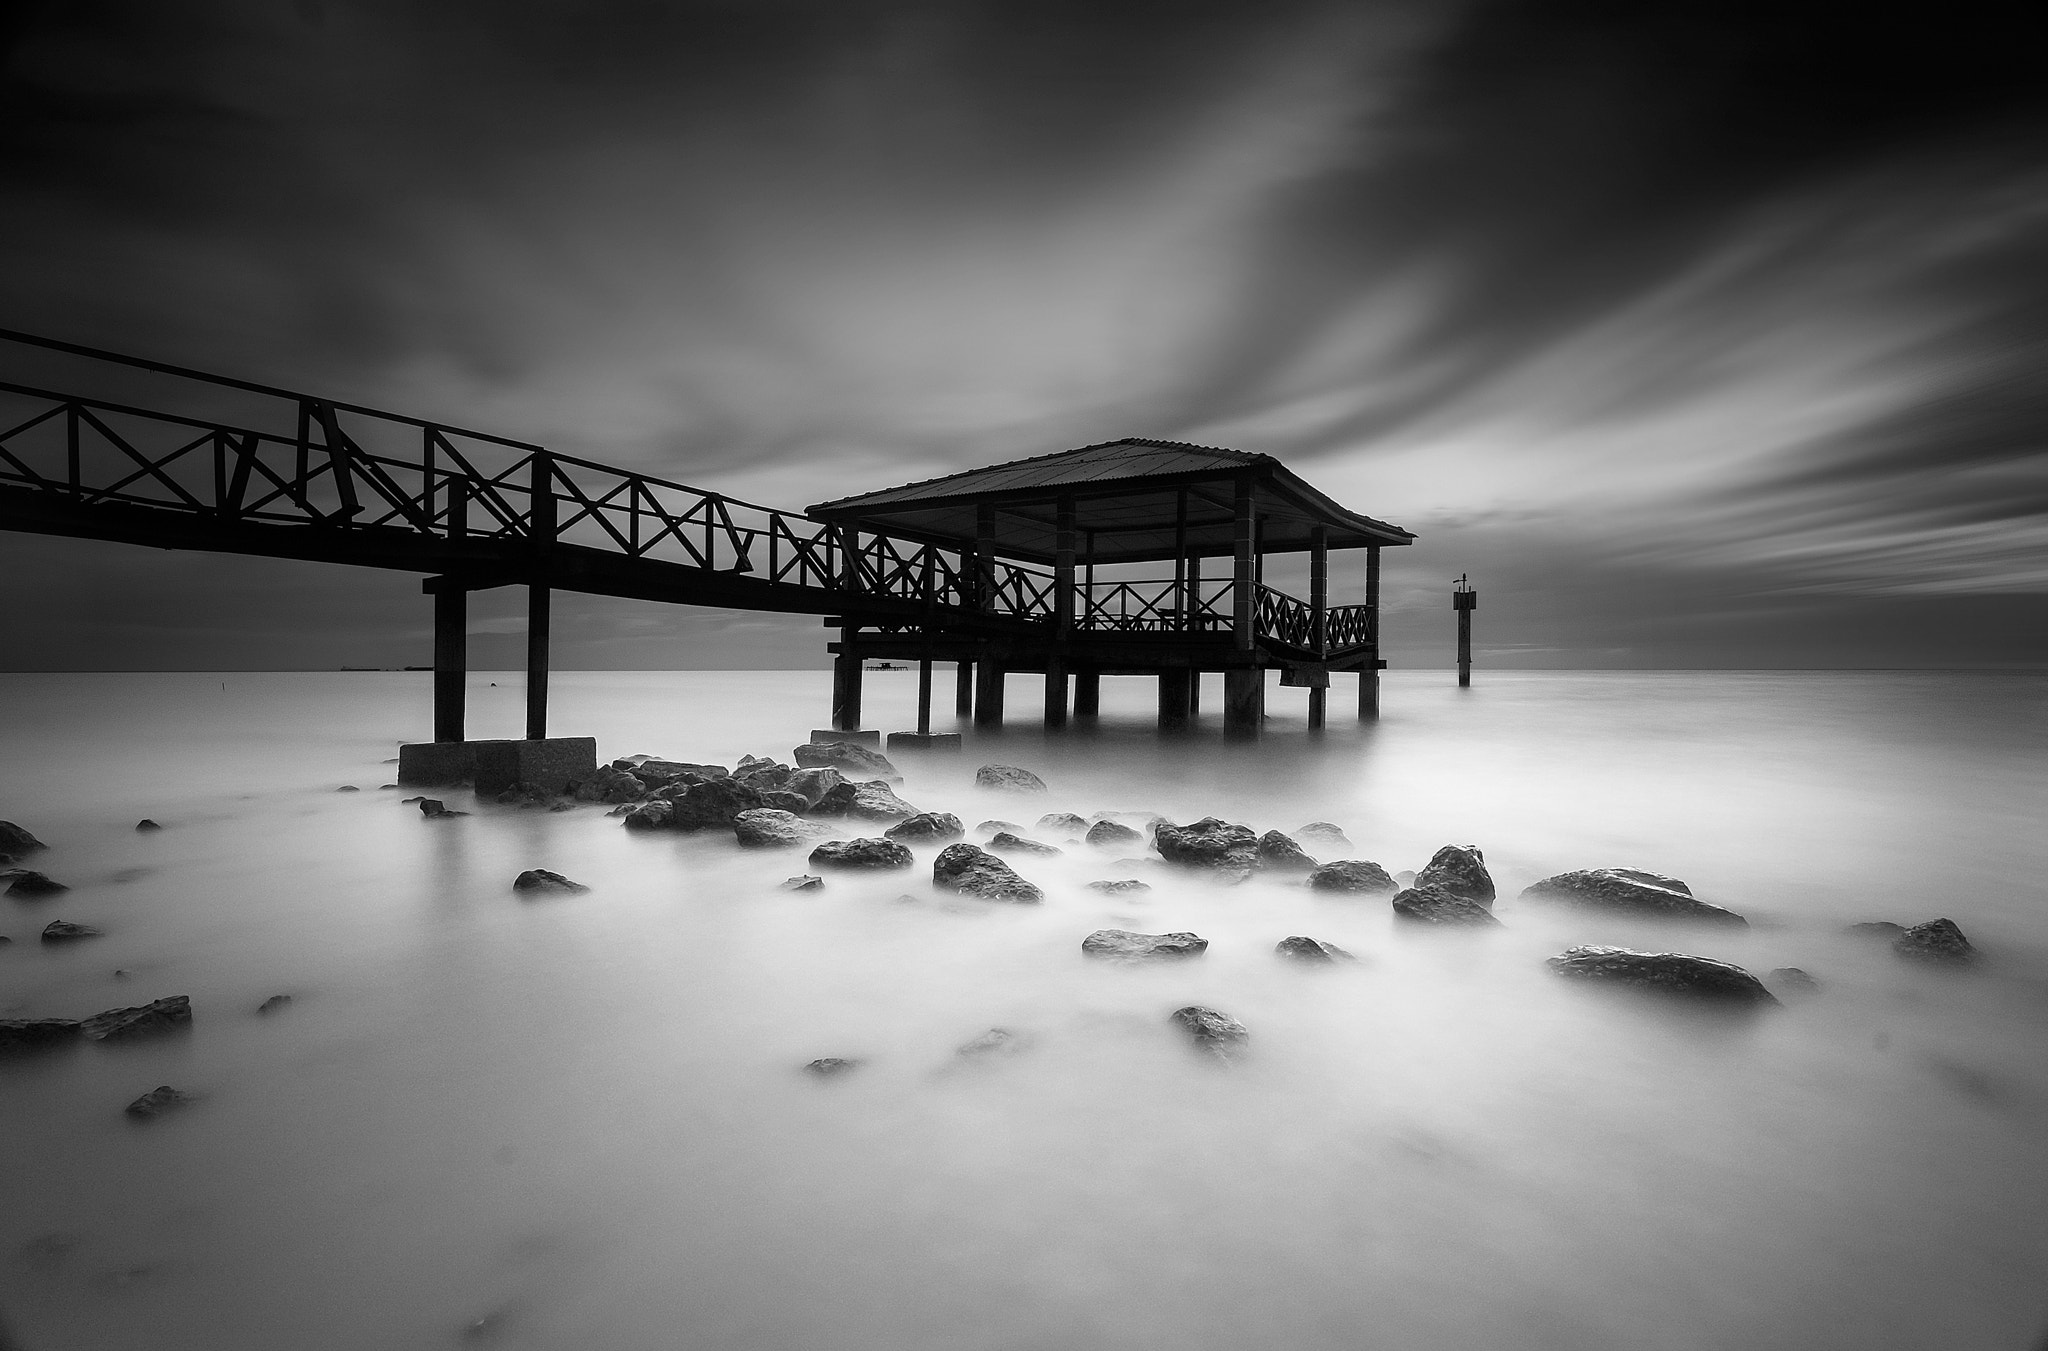 Photograph The Memory Remains by farizun amrod | photography on 500px